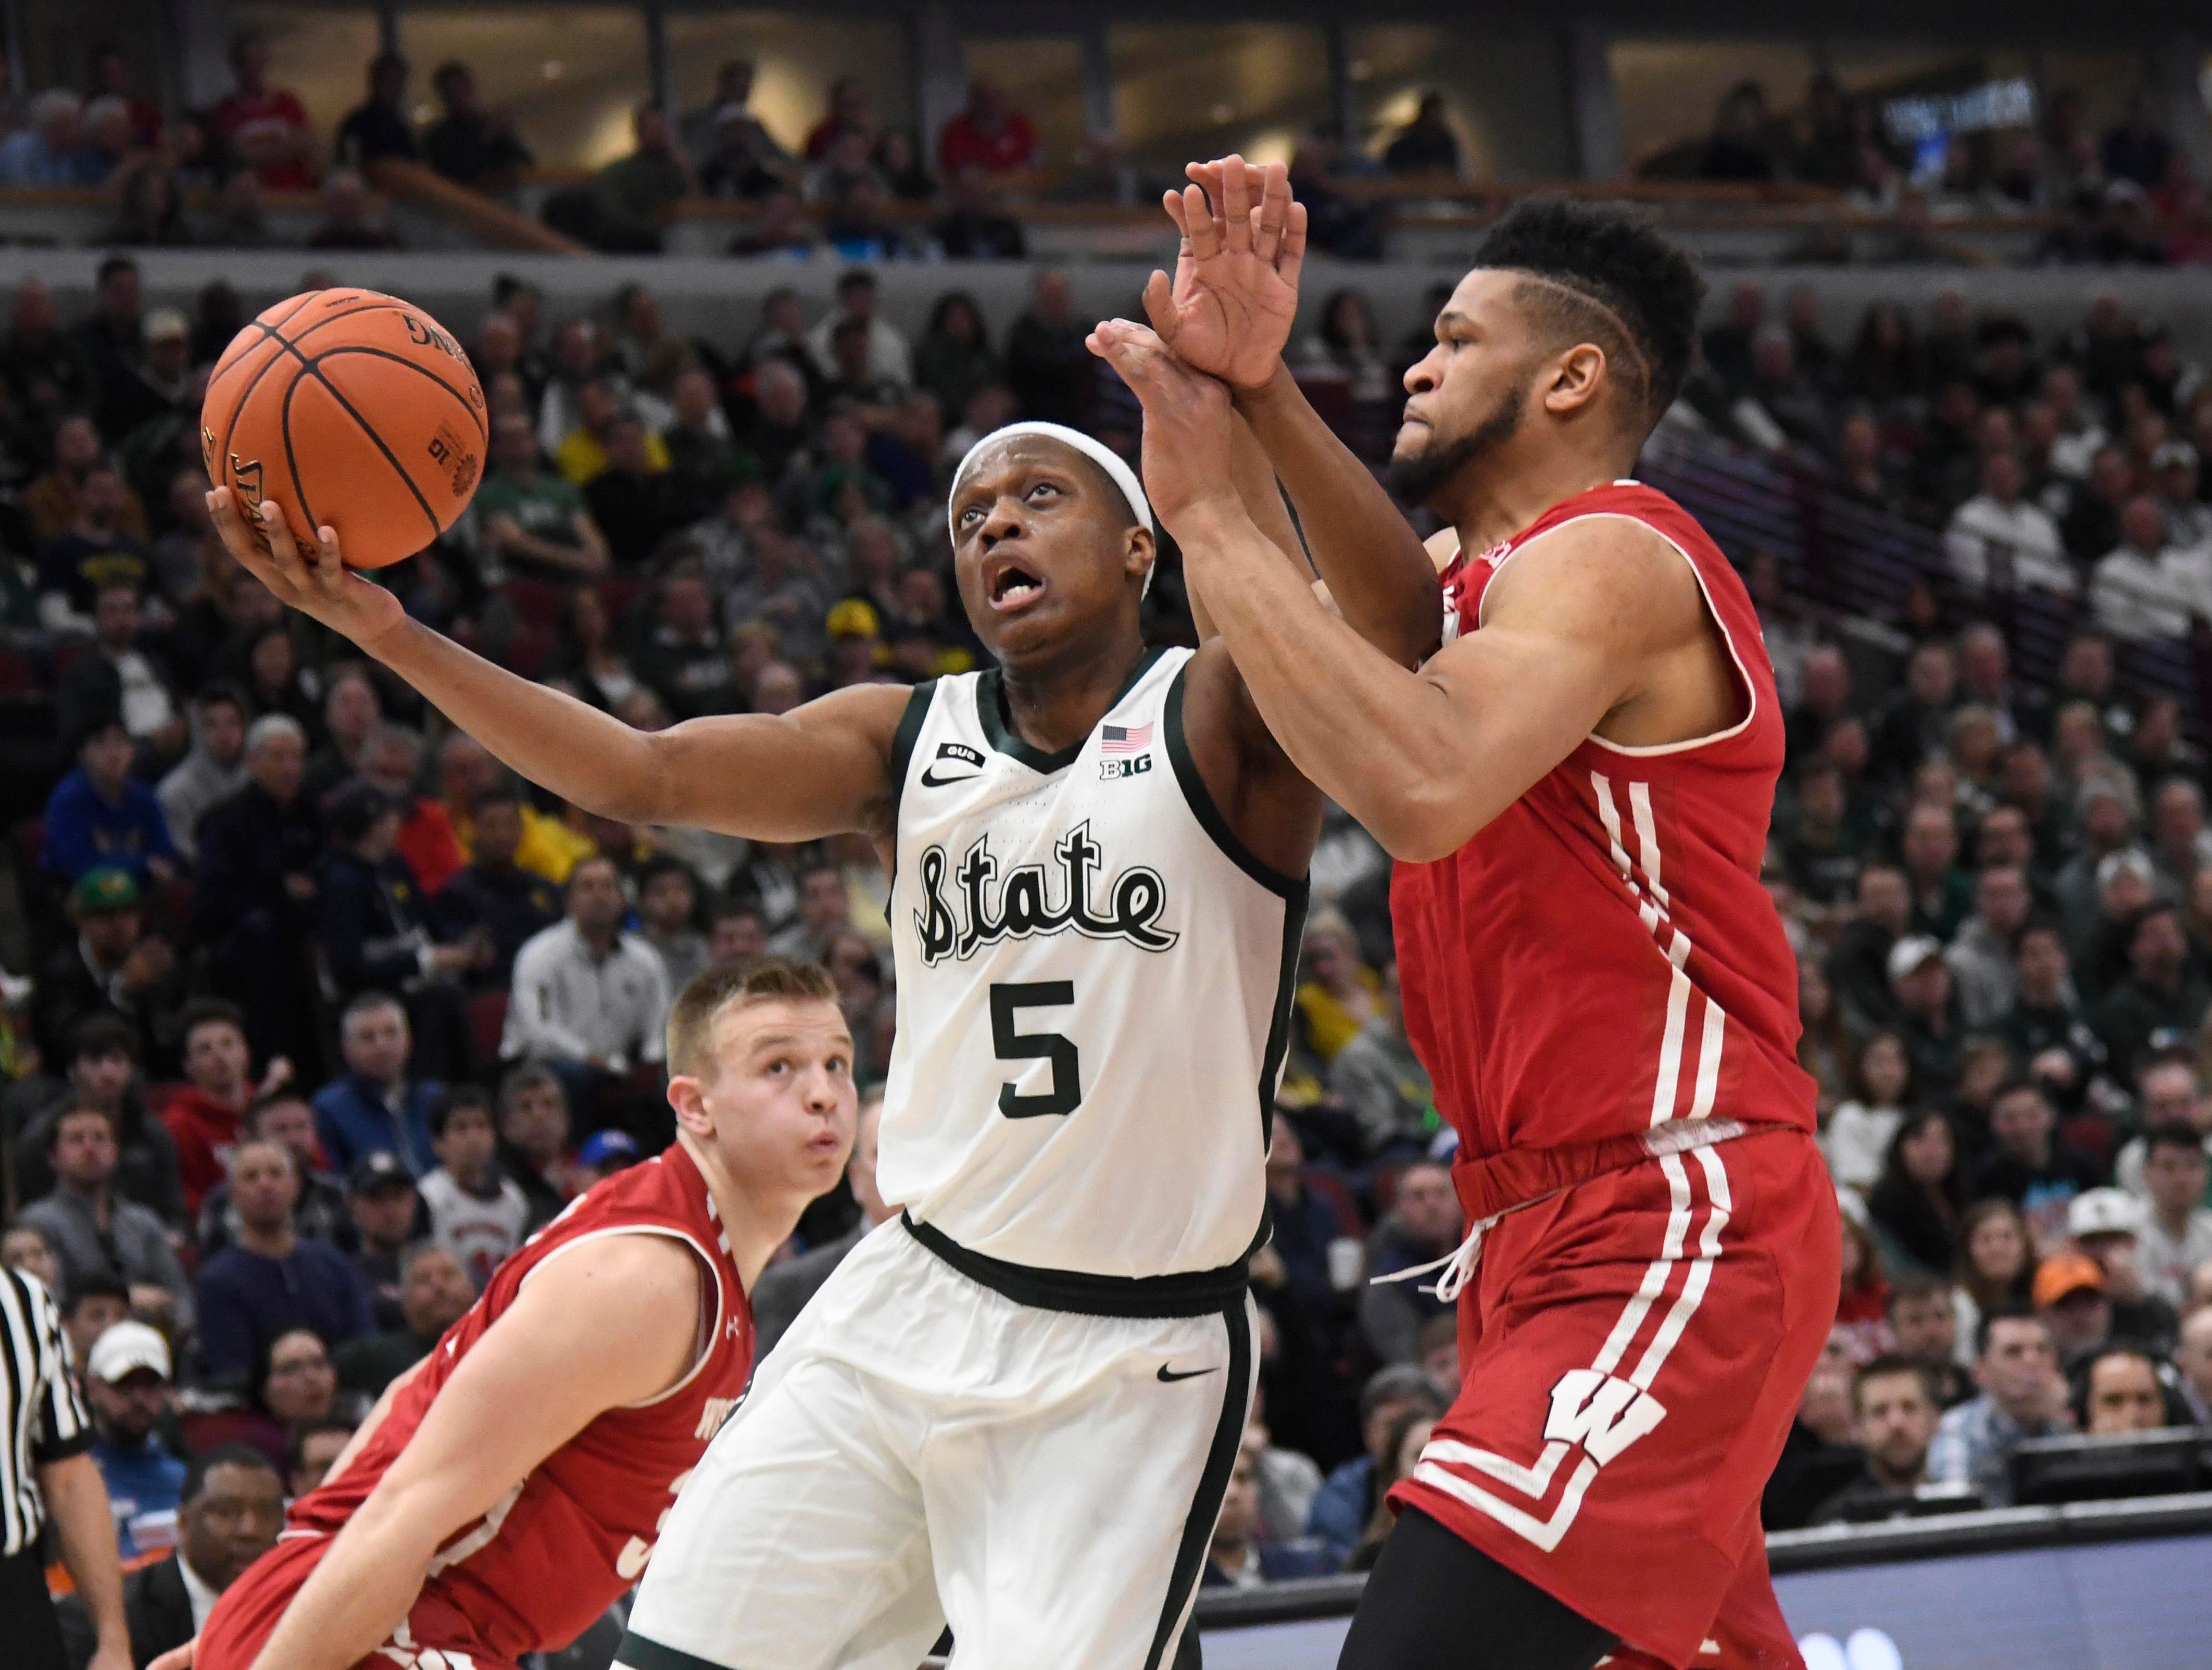 Michigan State Spartans guard Cassius Winston (5) controls the ball as Wisconsin Badgers forward Charles Thomas IV (15) defends during the second half in the Big Ten conference tournament at United Center. Mandatory Credit: David Banks-USA TODAY Sports